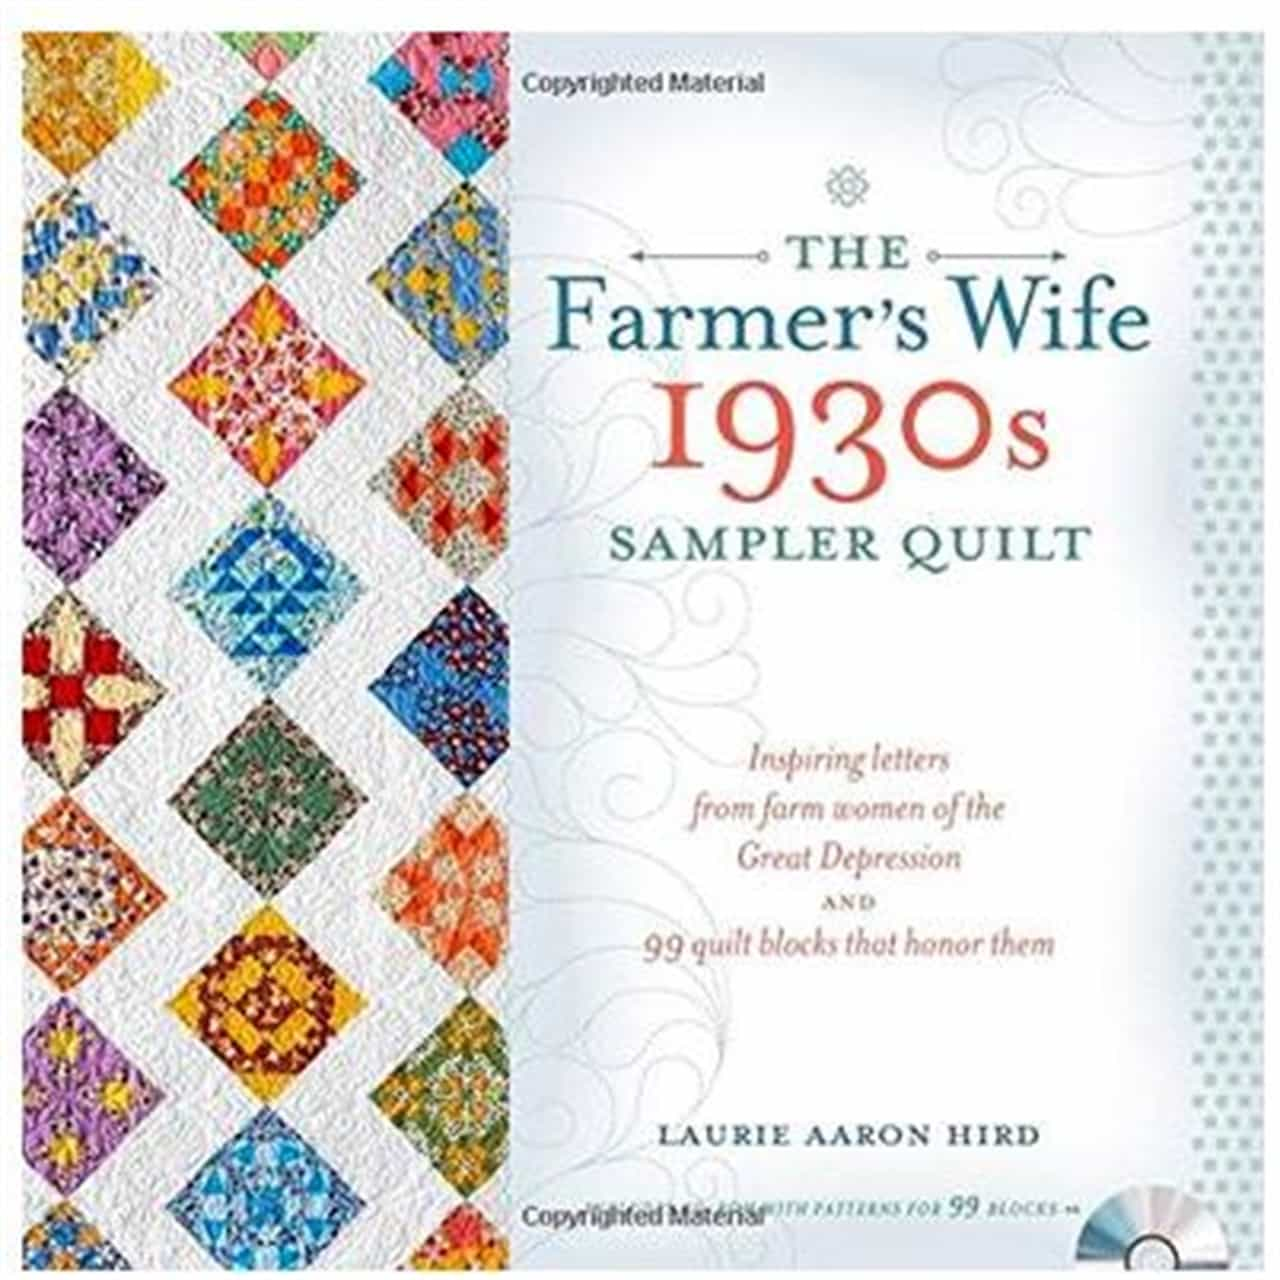 'The Farmer's Wife 1930s Sampler Quilt: Inspiring Letters …'